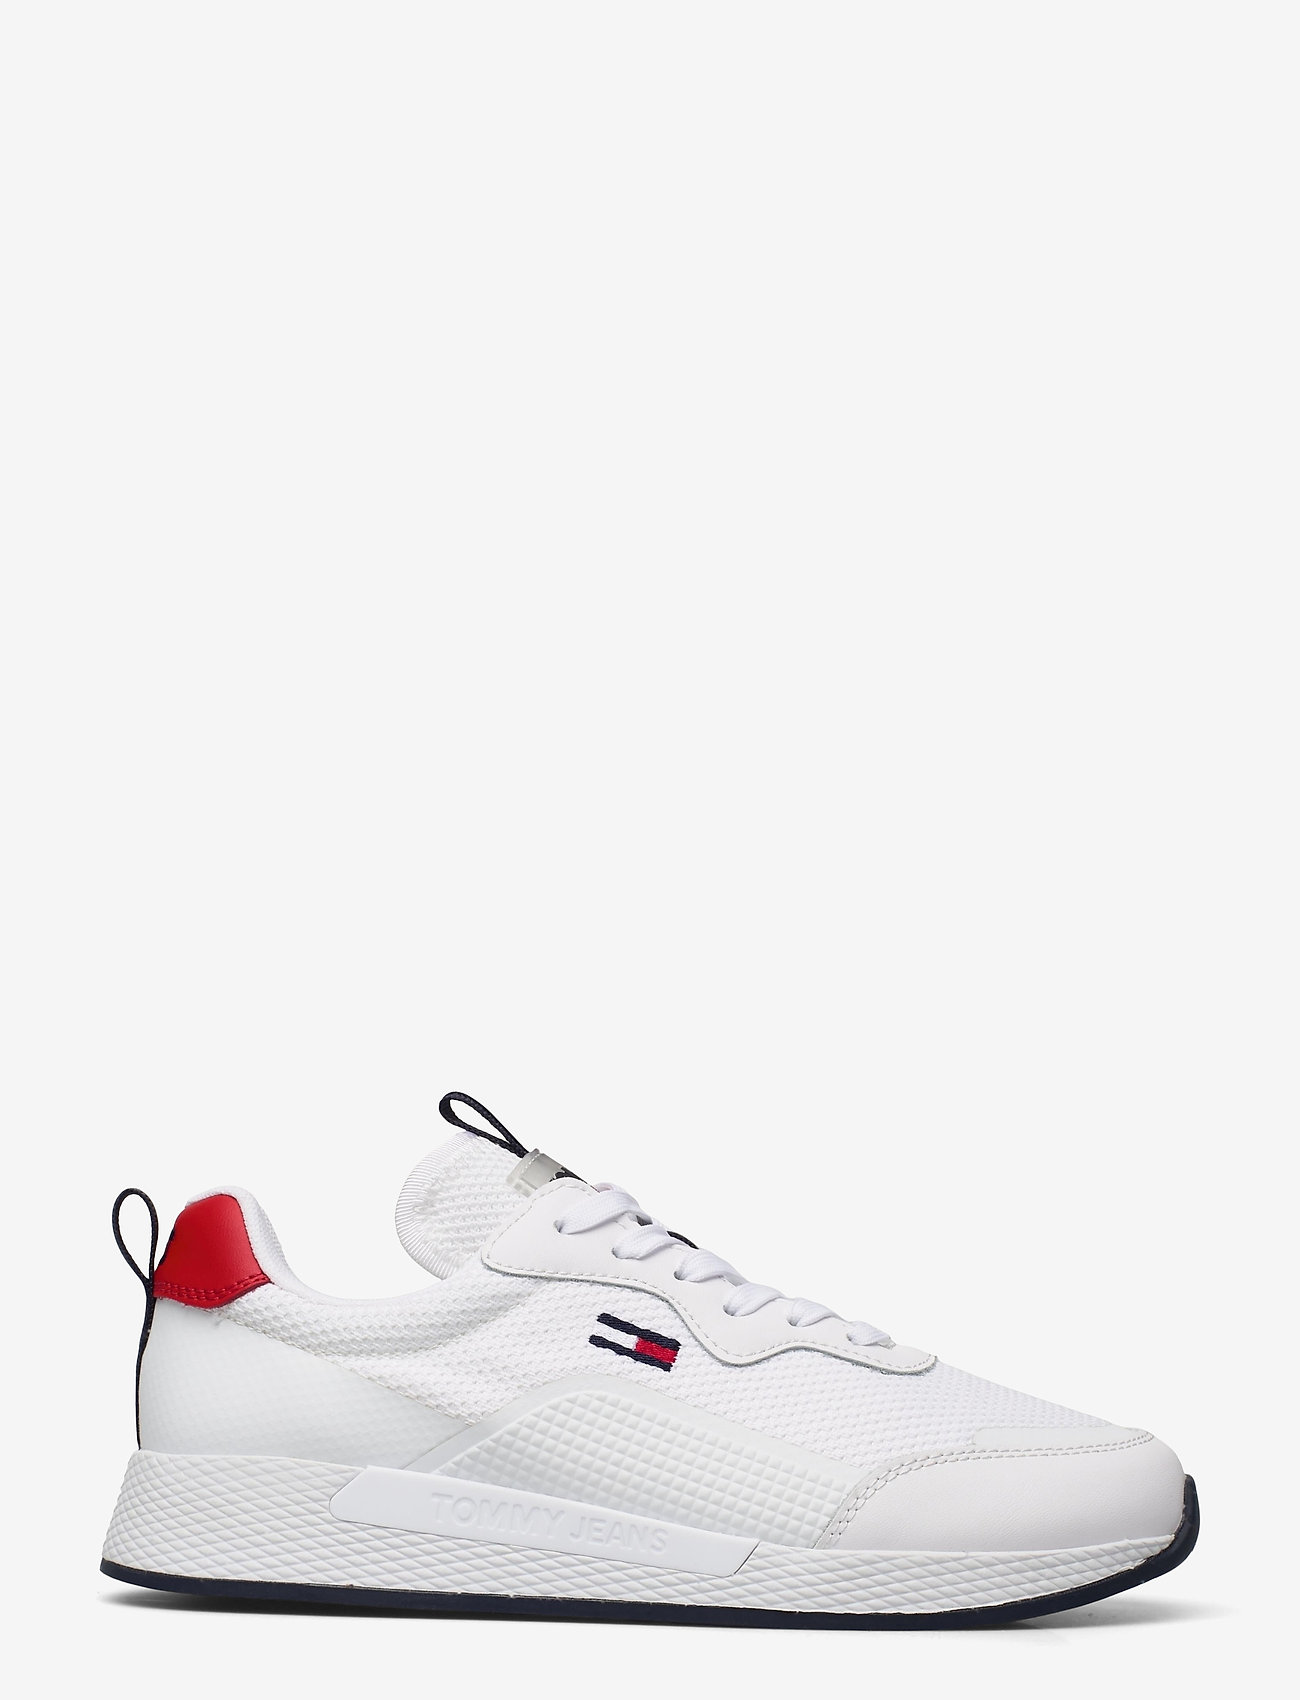 Tommy Hilfiger - TECHNICAL DETAIL RUNNER - low top sneakers - rwb - 1